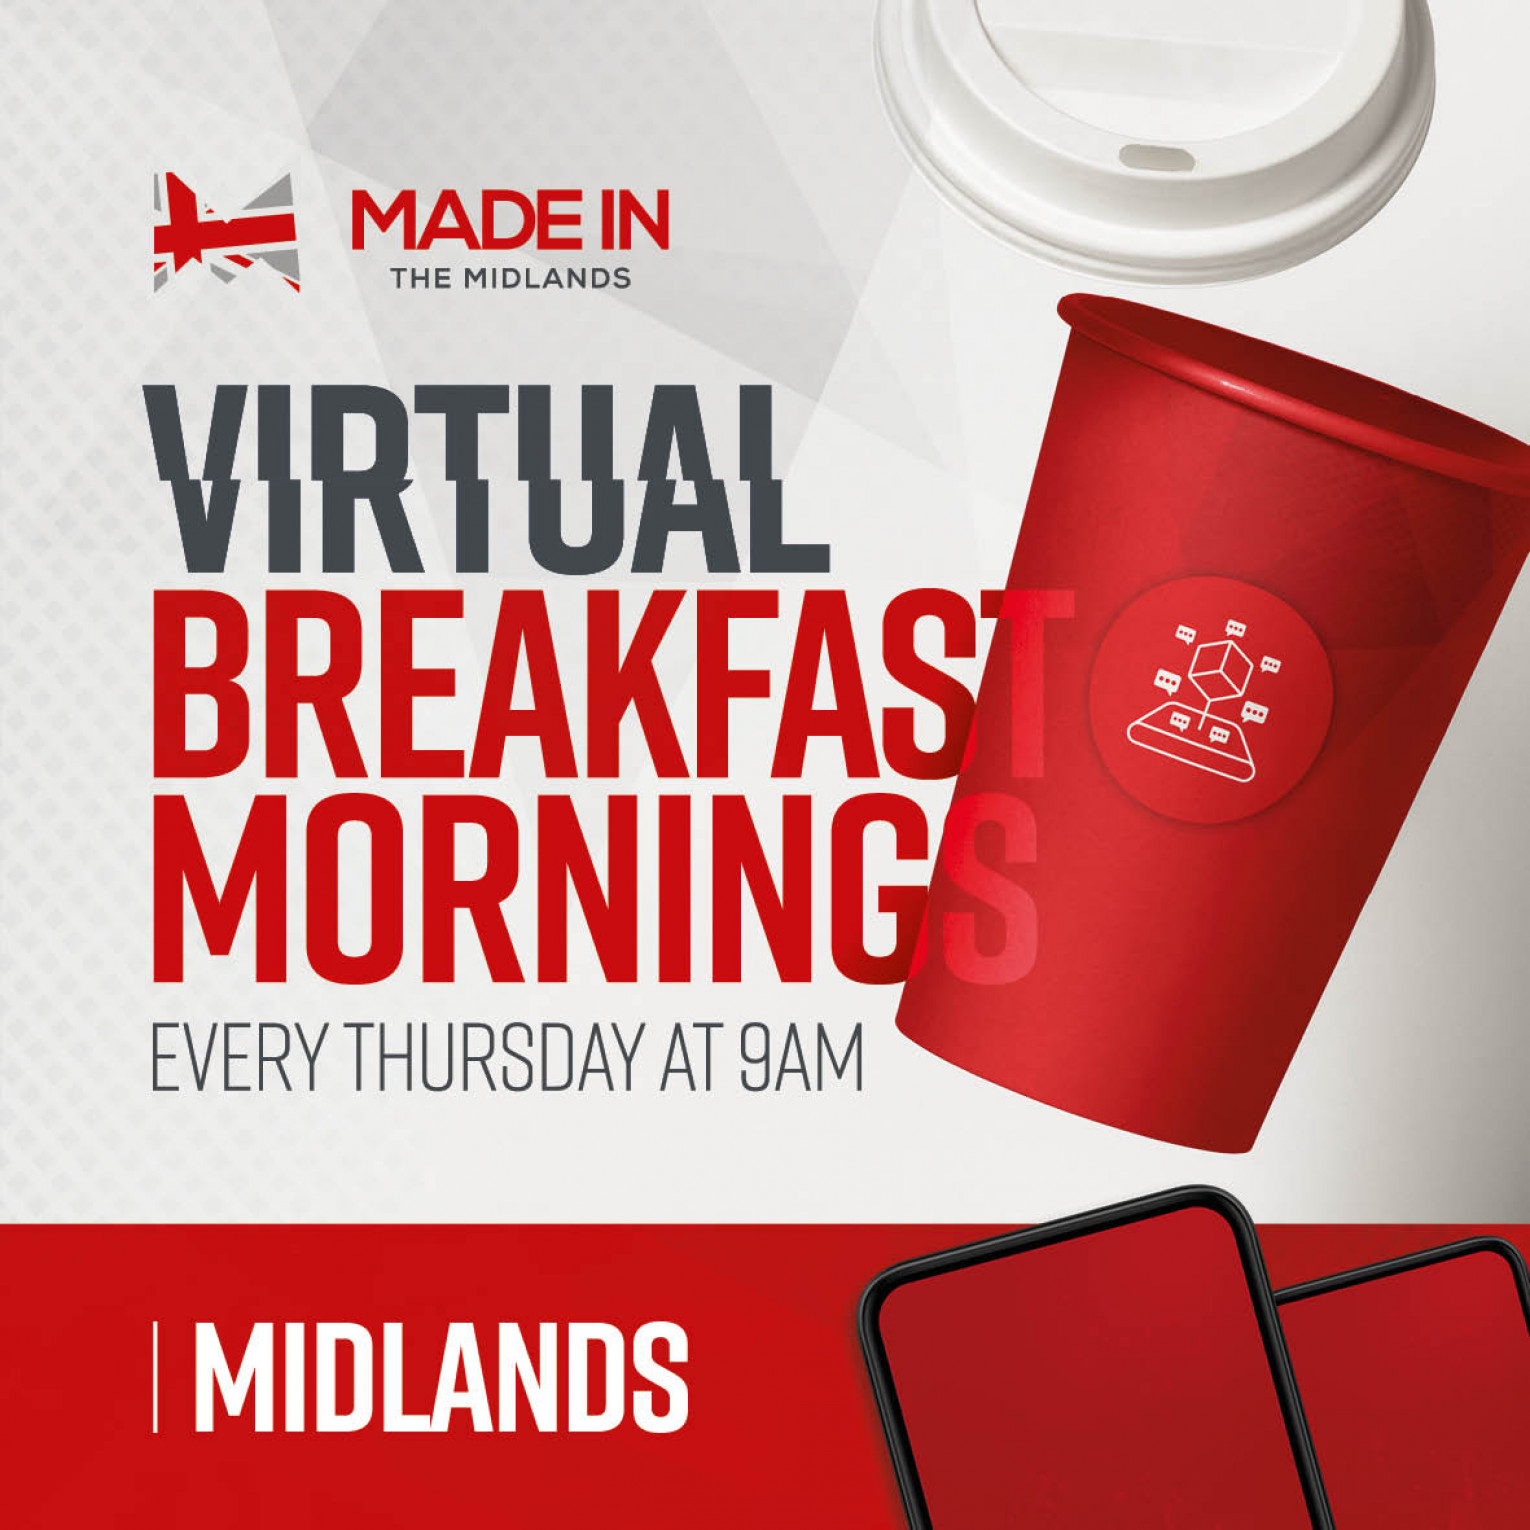 Made in the Midlands Virtual Breakfast Morning with Portakabin